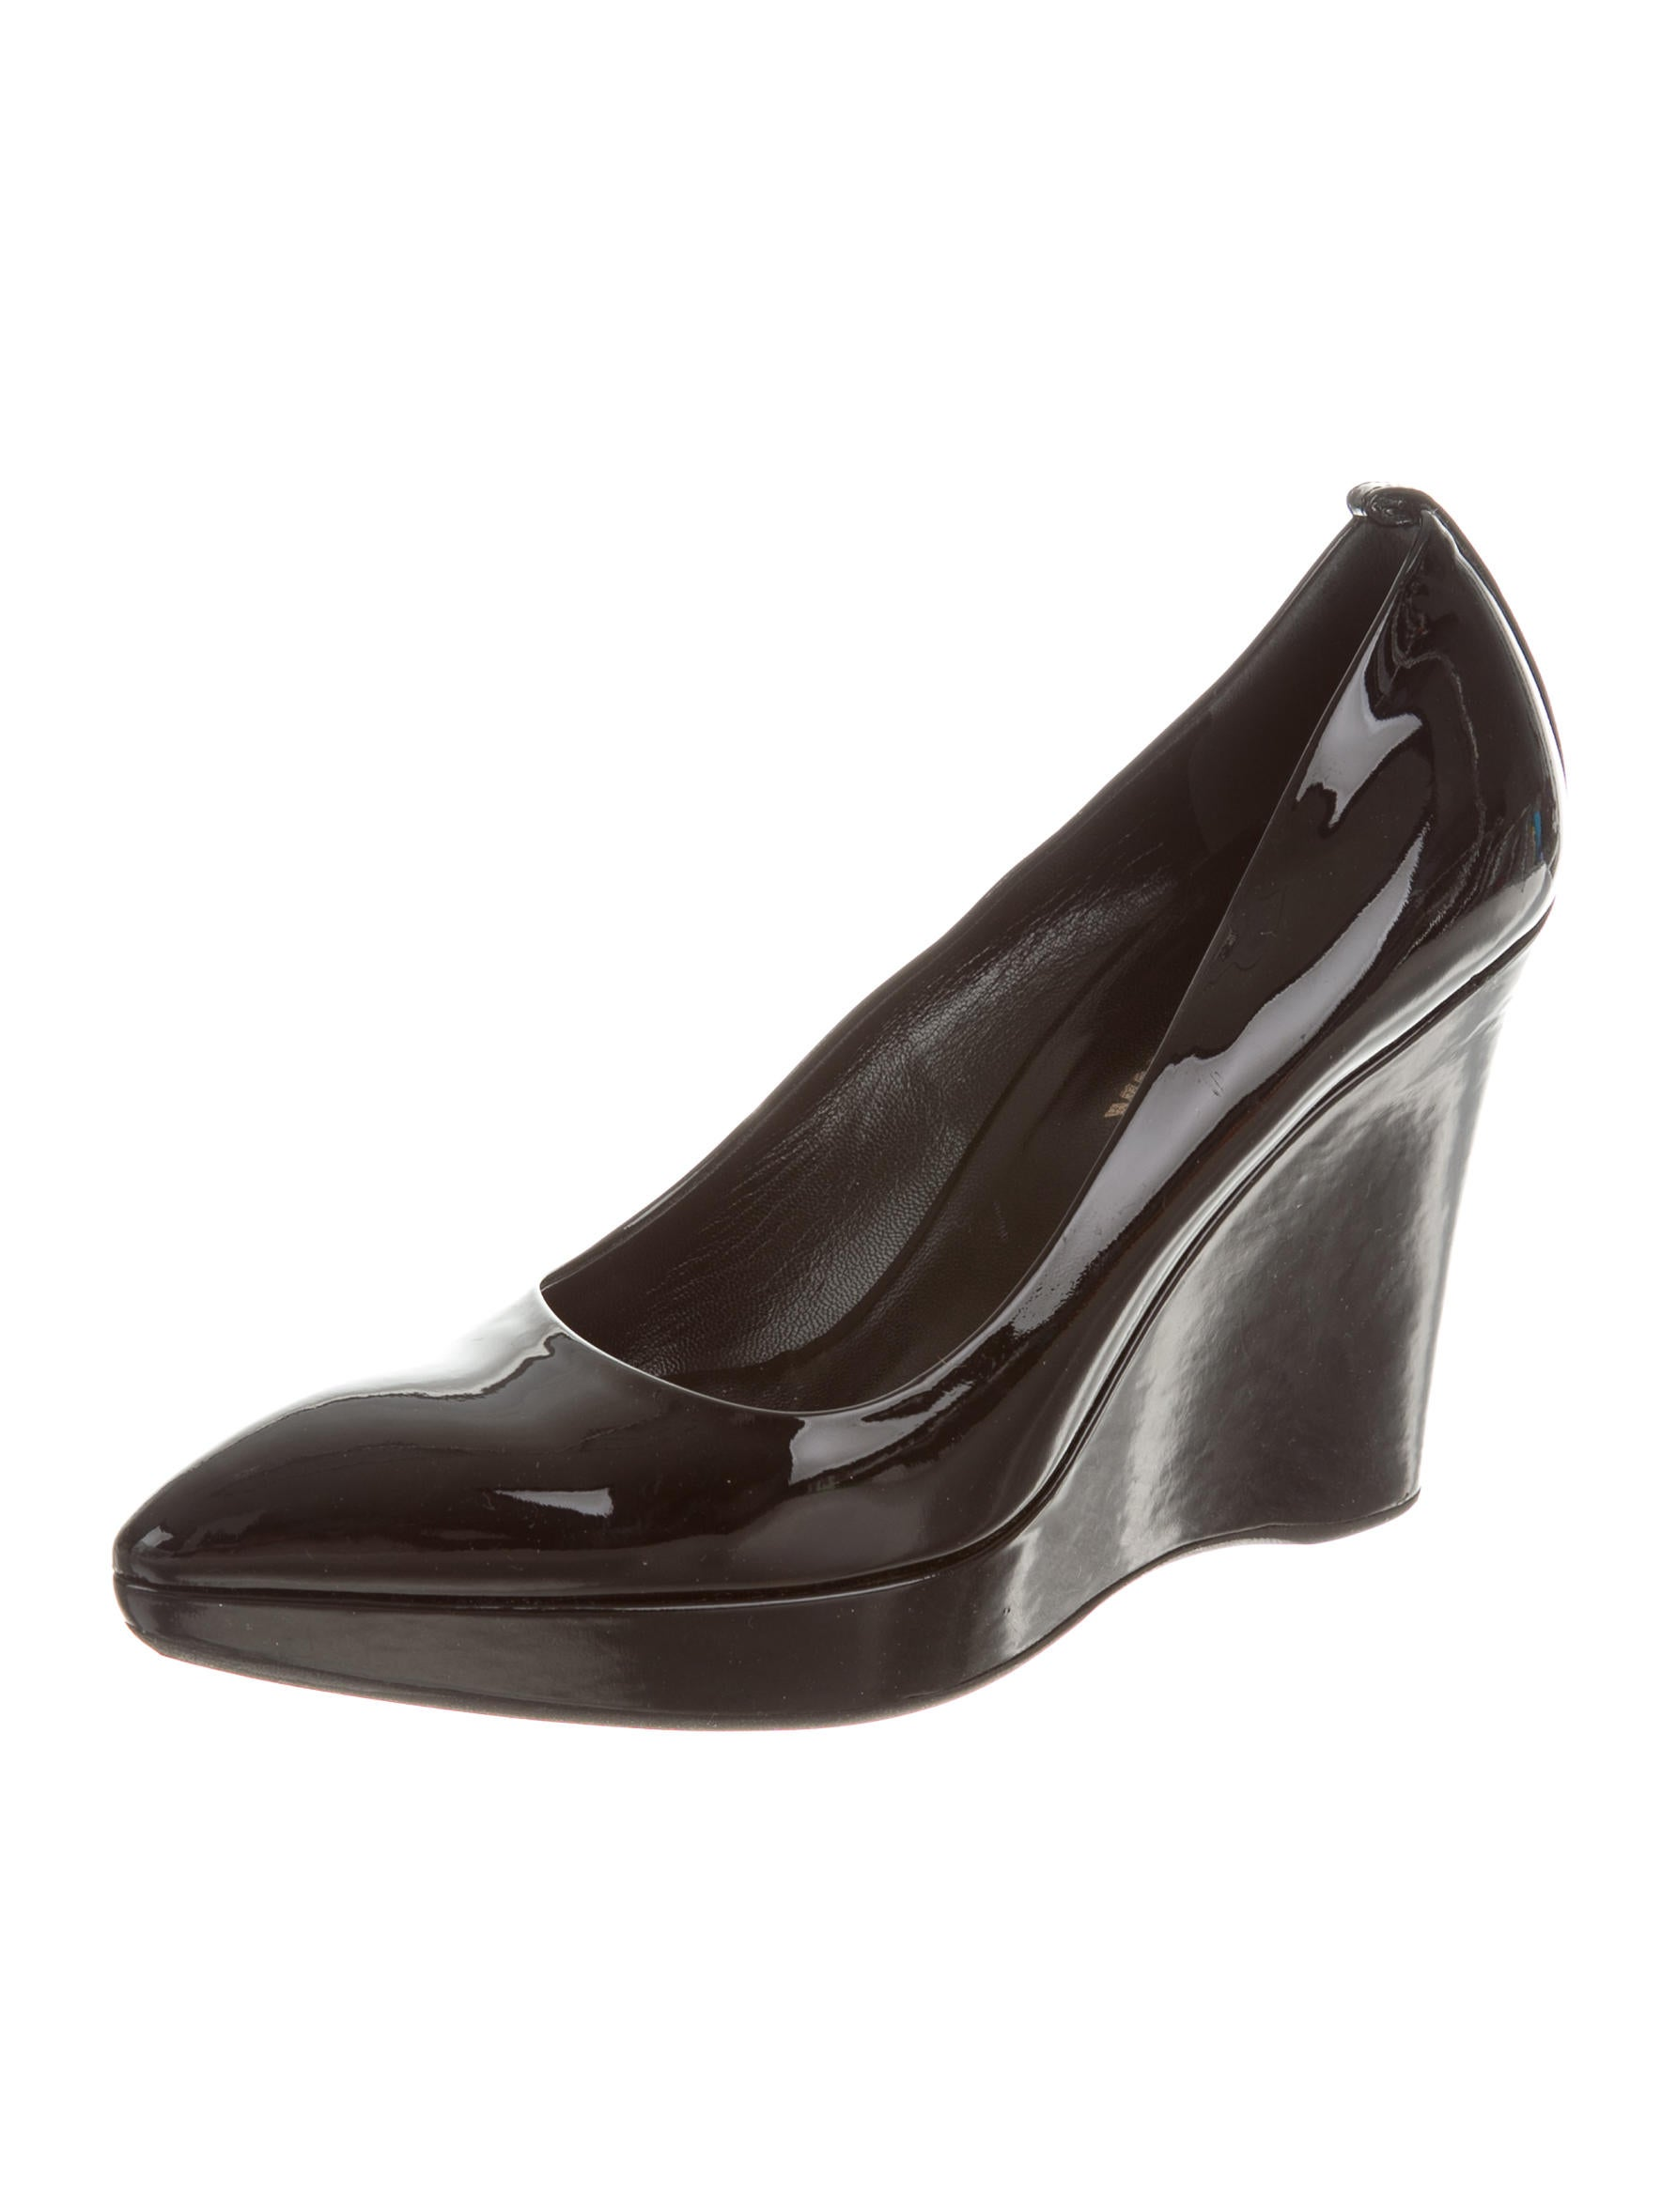 jil sander patent leather pointed toe wedges shoes